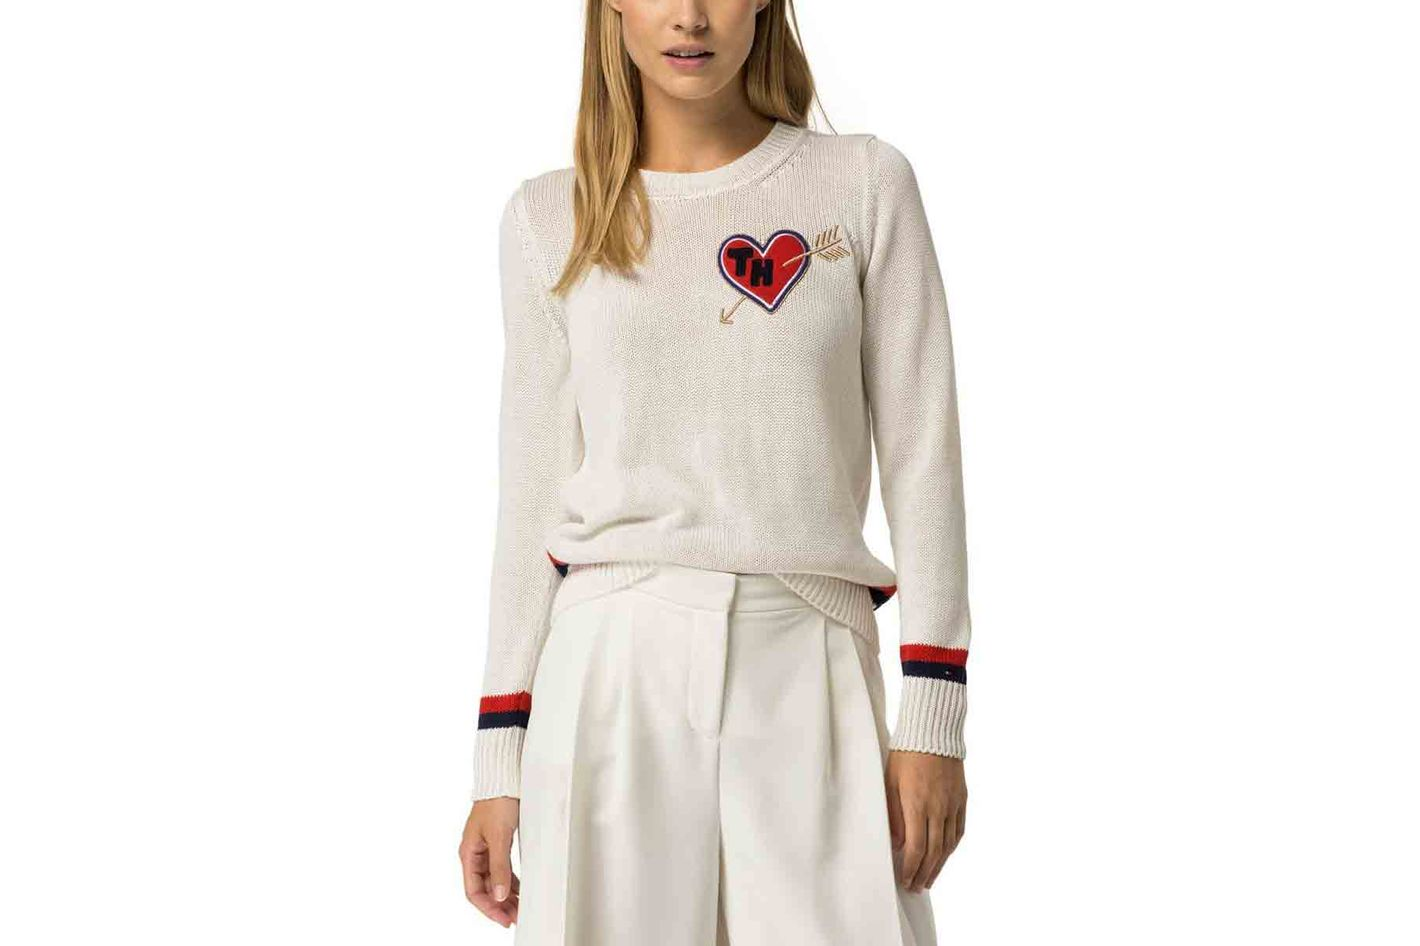 Tommy Hilfiger 'I Heart Tommy' Stripe Sweater